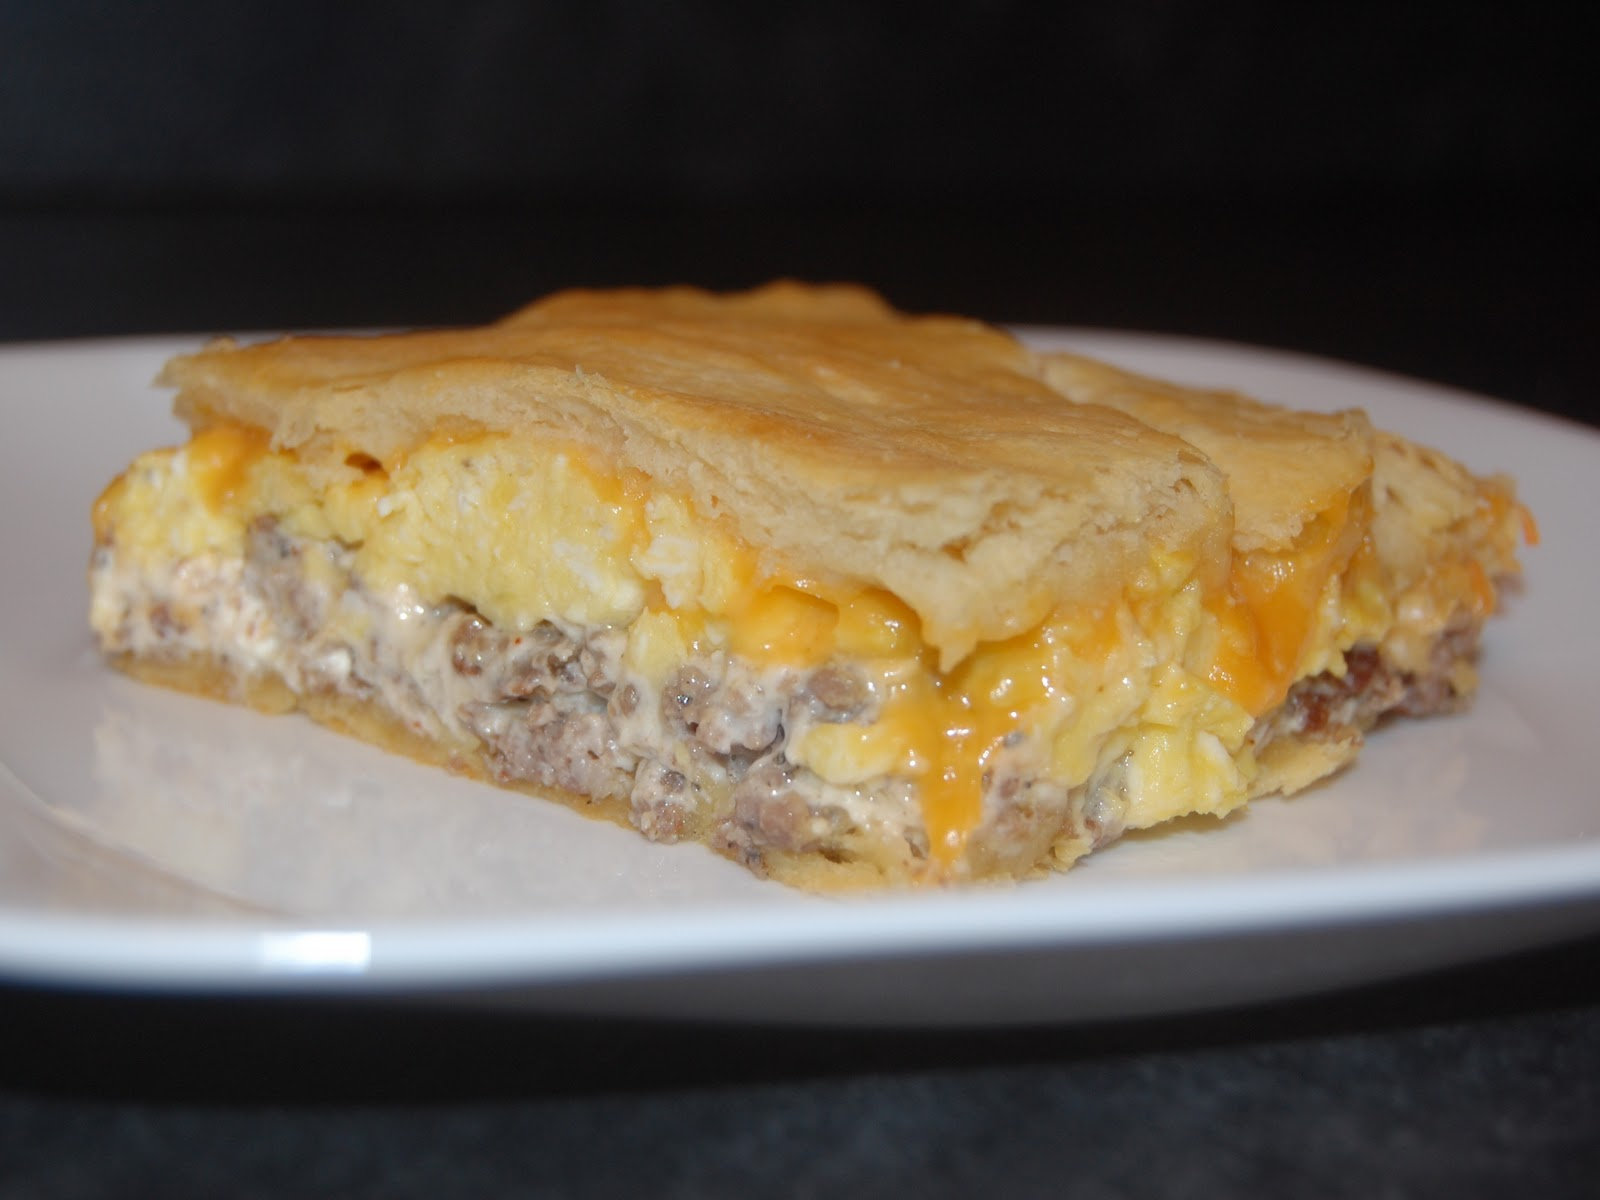 Cassie Craves Crescent Sausage Egg and Cheese Bake